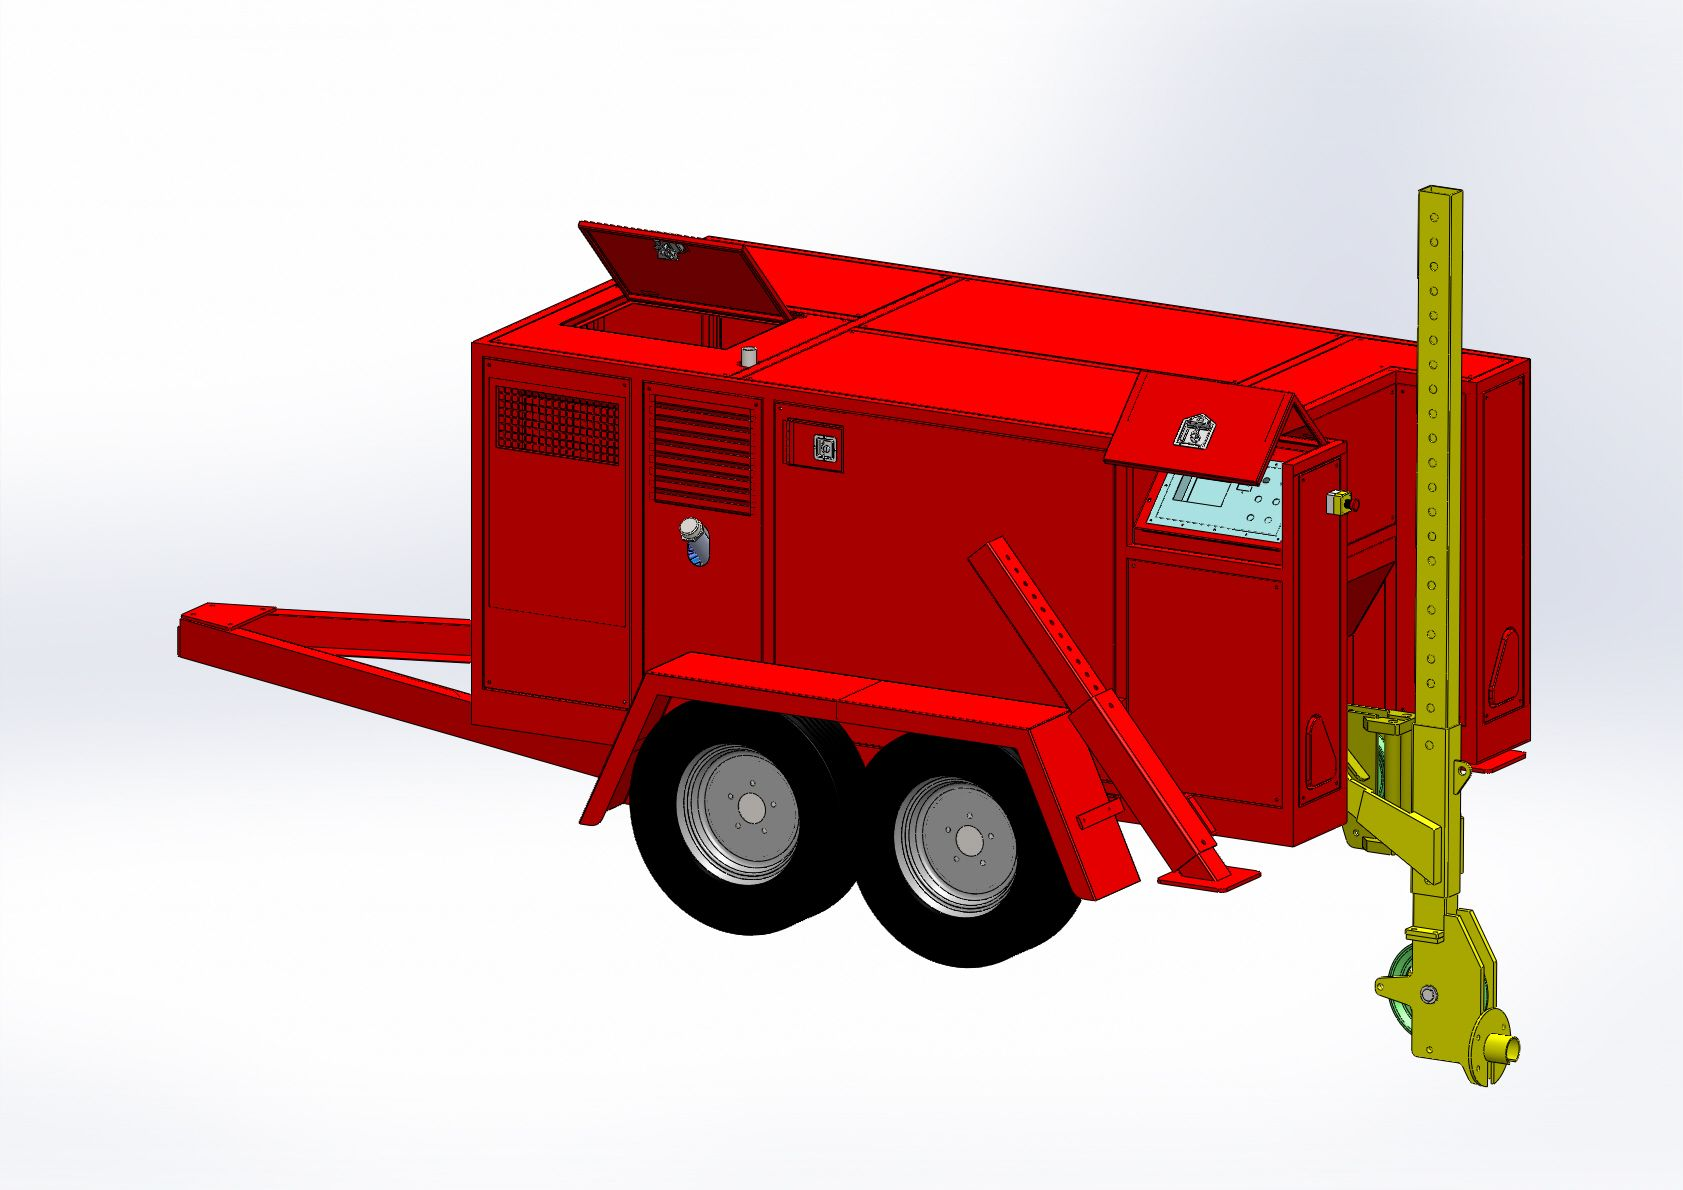 The winch has been designed to carry approx 900 Metres of 16 mm Diameter IWRC wire rope; this offers a breaking load of 16.50 Tonnes. If longer lengths are required, the winch can be fitted with approx 1000 Mtrs of 14 mm Diameter IWRC wire rope this offers a lower breaking load of 12.60 Tonnes. Trenchless Technology